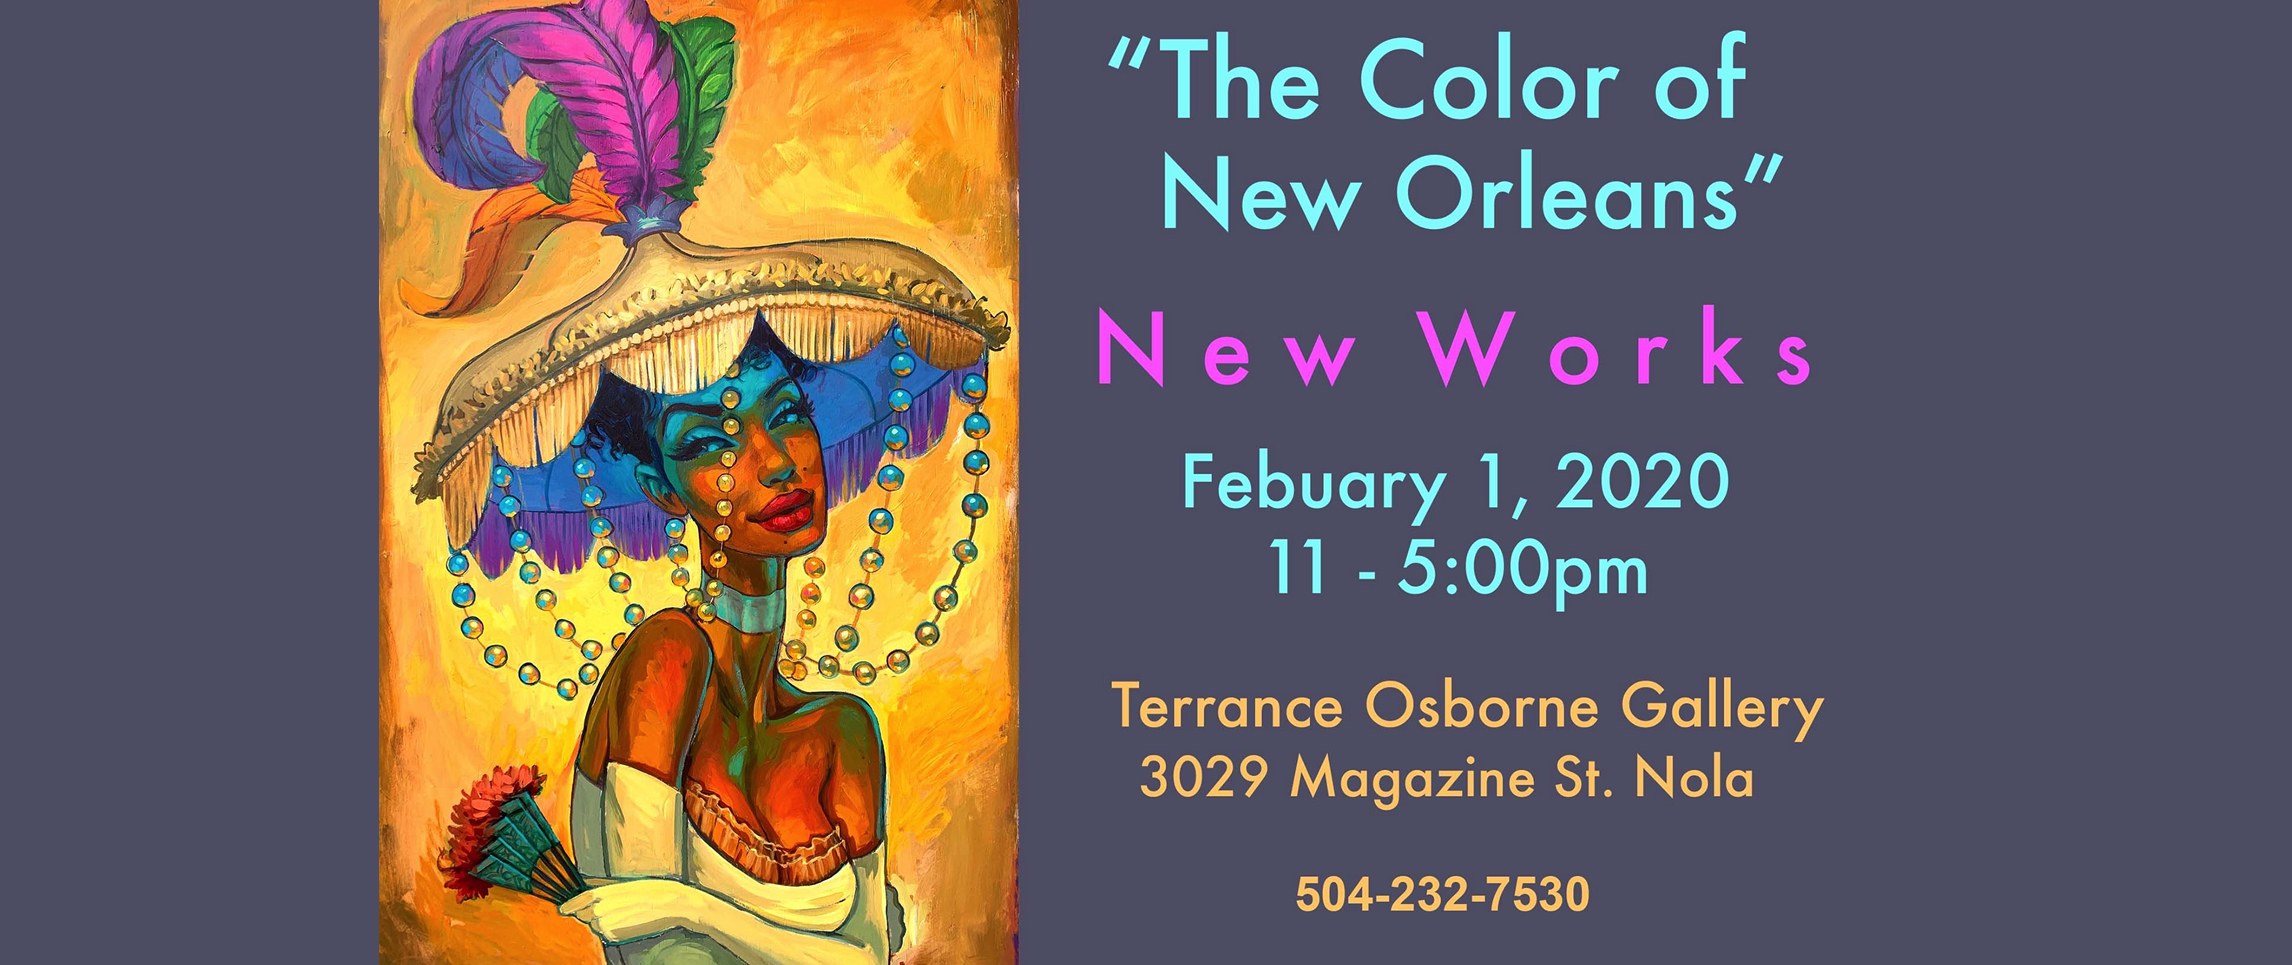 color-new-orleans-event